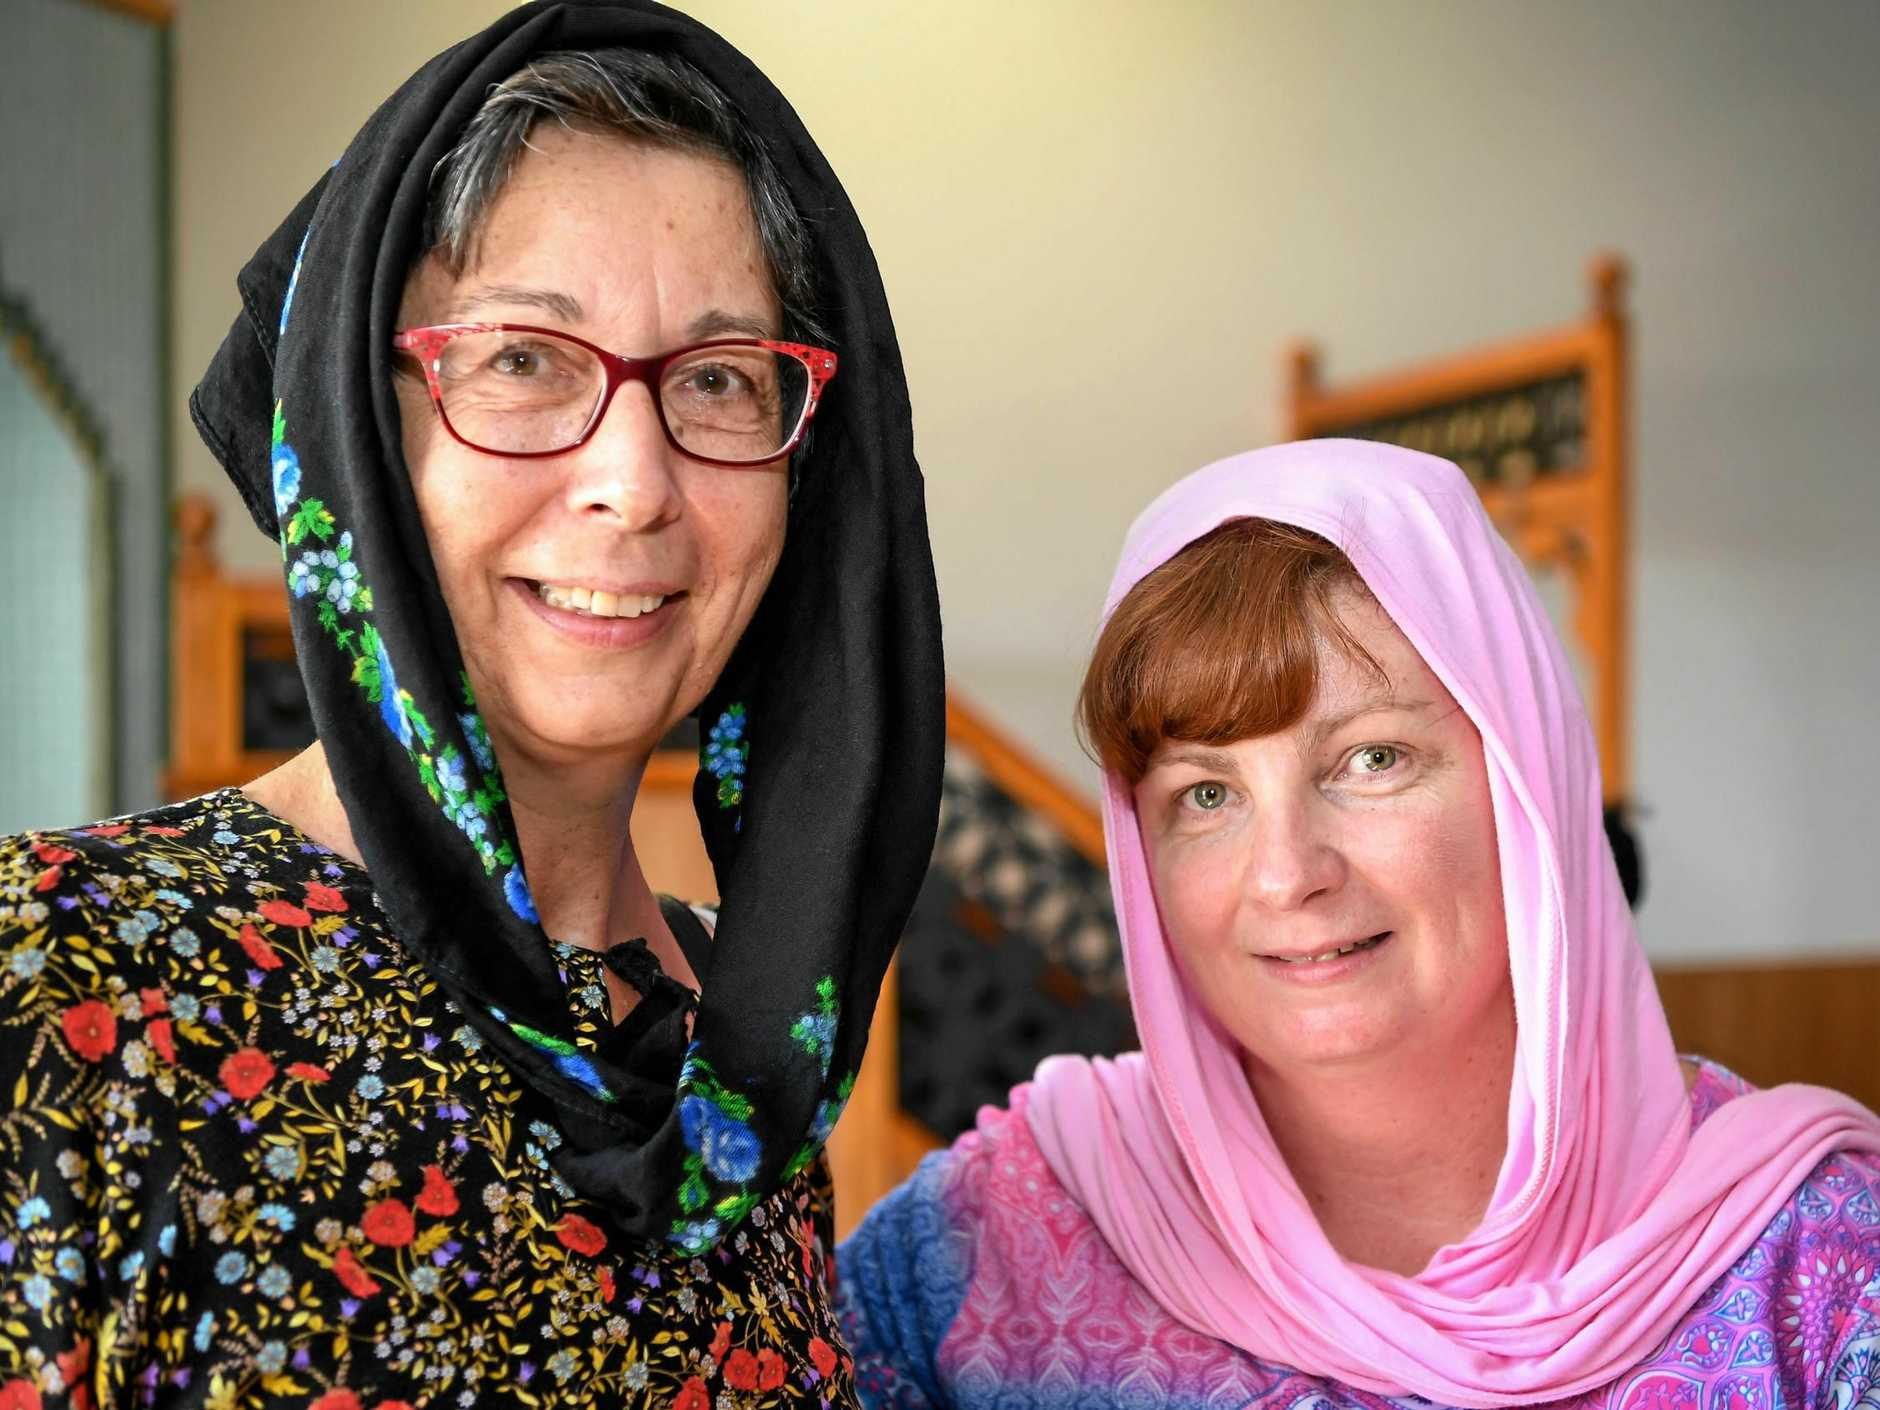 STANDING UNITED: Kathryn Tolstoff and Melissa Shehato at the Bundaberg Mosque Open Day on Saturday.